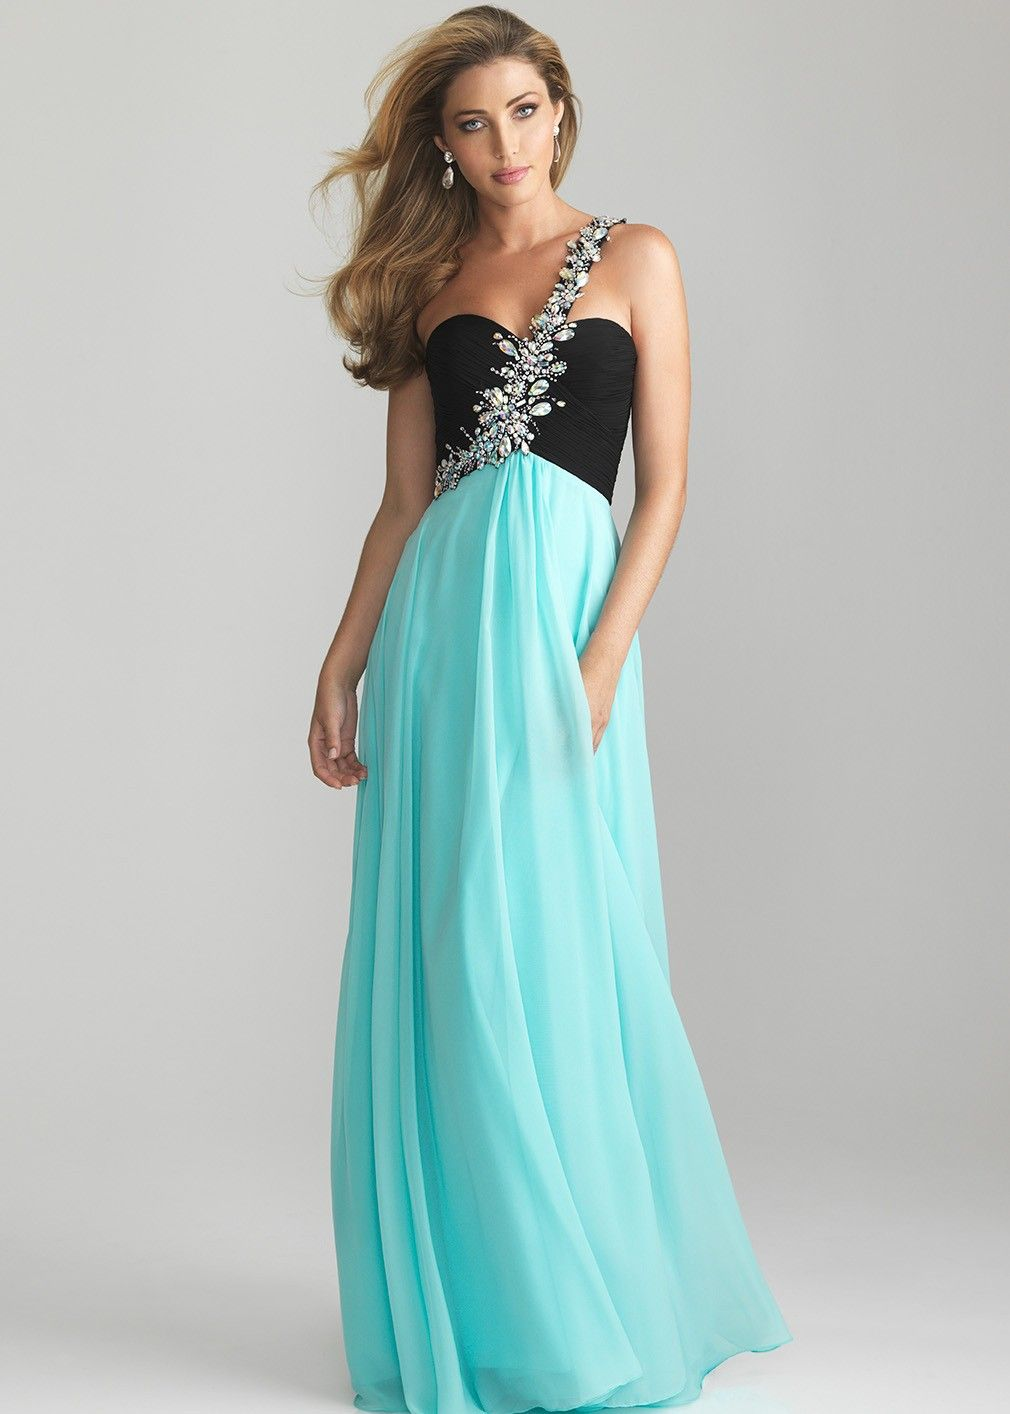 Prom maybe dresses uc pinterest night moves and prom